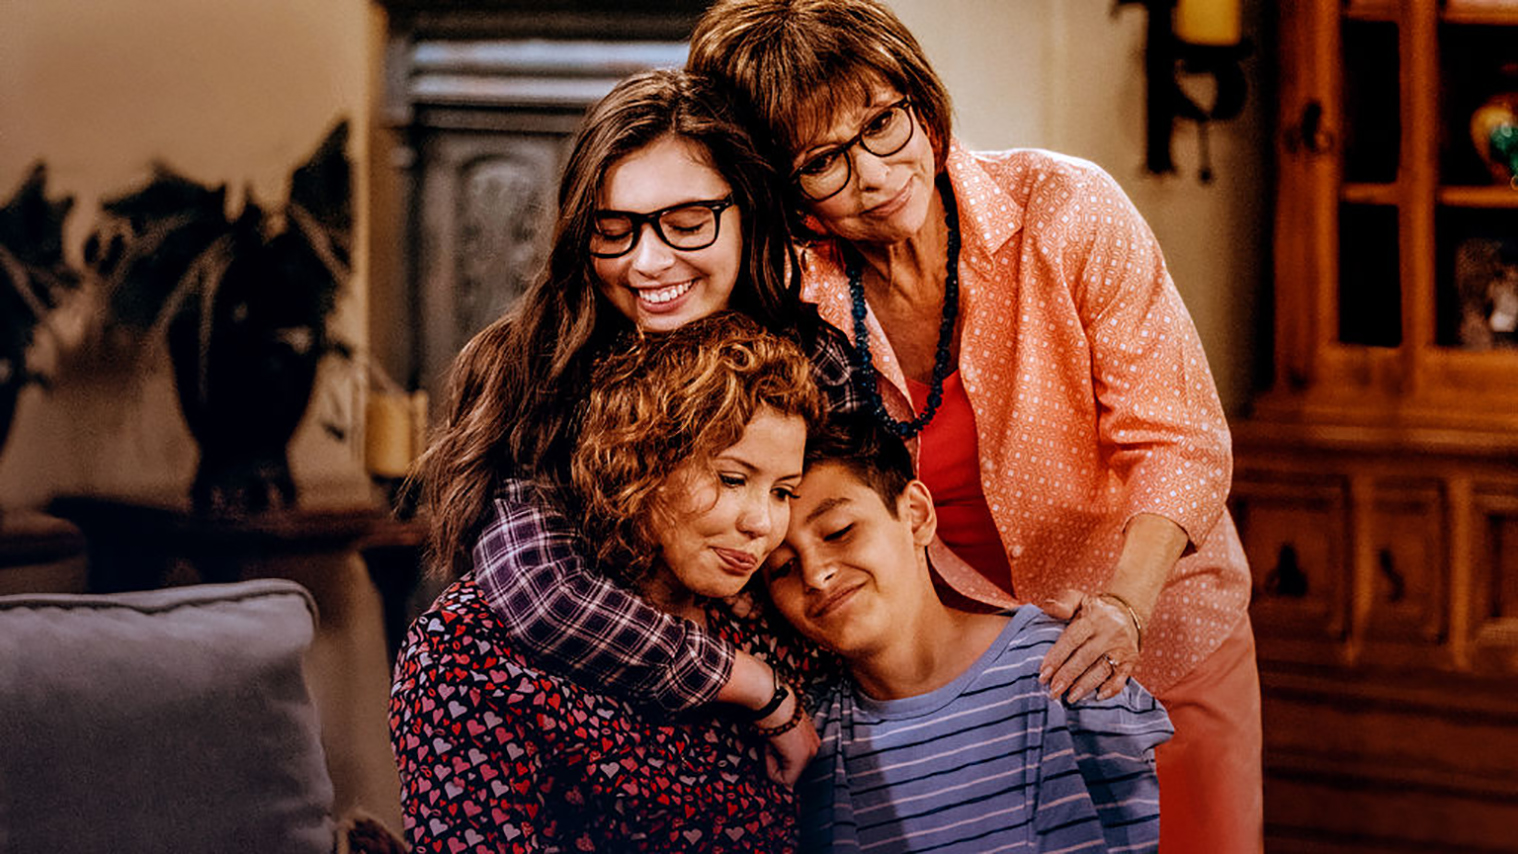 A group hug with a mom, daughter, son, and grandma